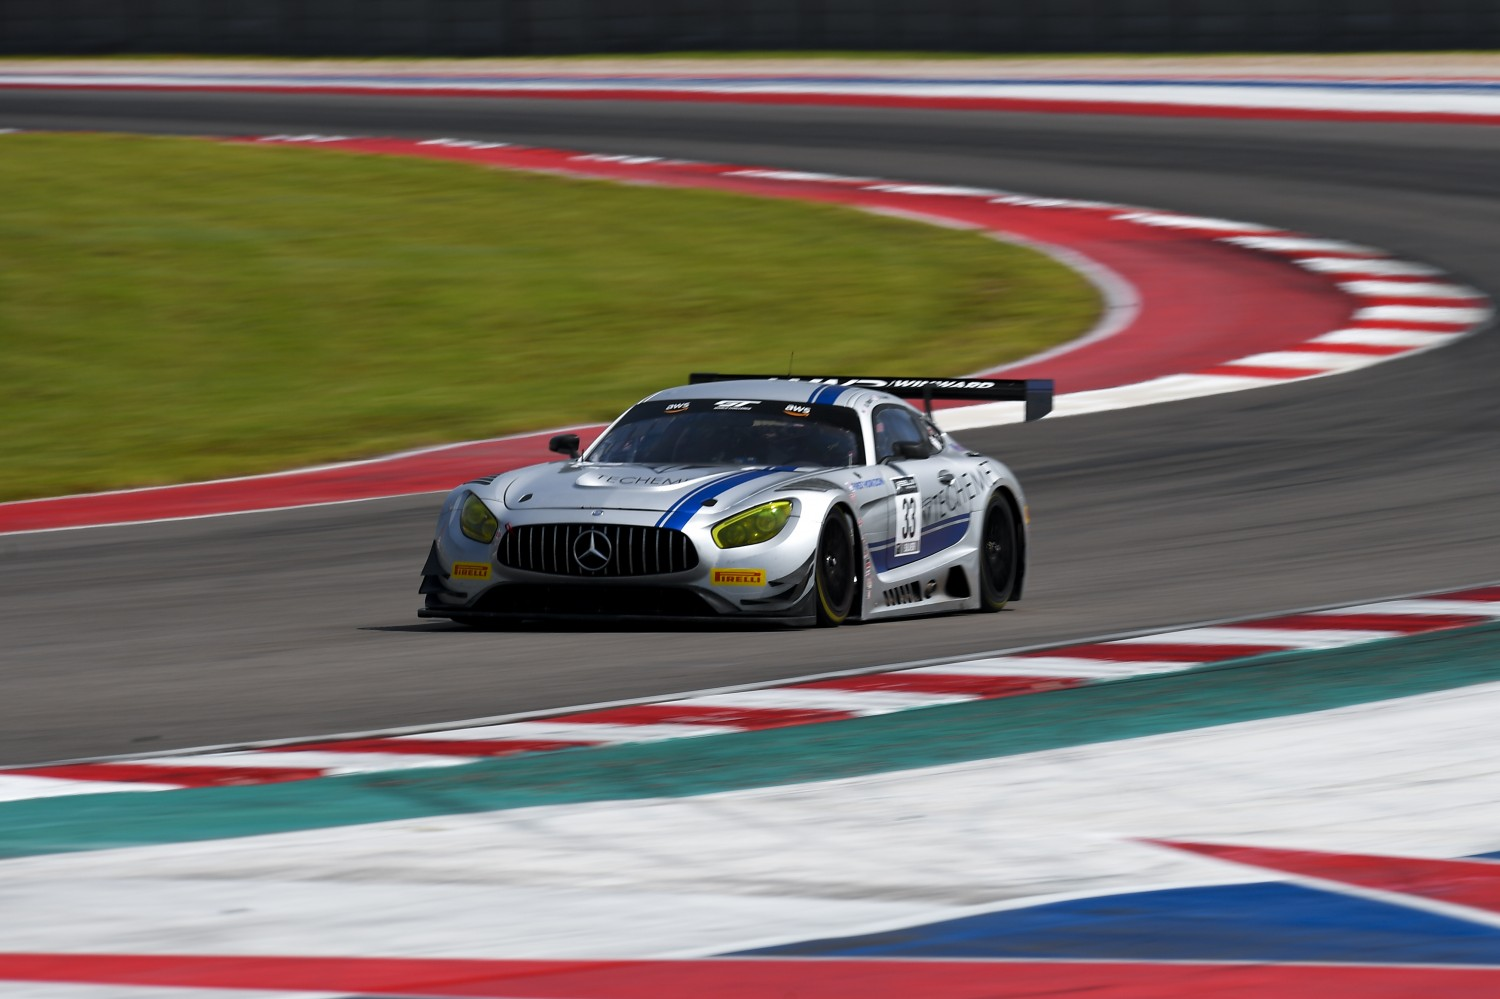 #33 Mercedes-AMG GT3 of Alec Udell and Russell Ward, Winward Racing, GT3 Pro-Am,      2020 SRO Motorsports Group - COTA2, Austin TX Photographer: Gavin Baker/SRO | © 2020 Gavin Baker